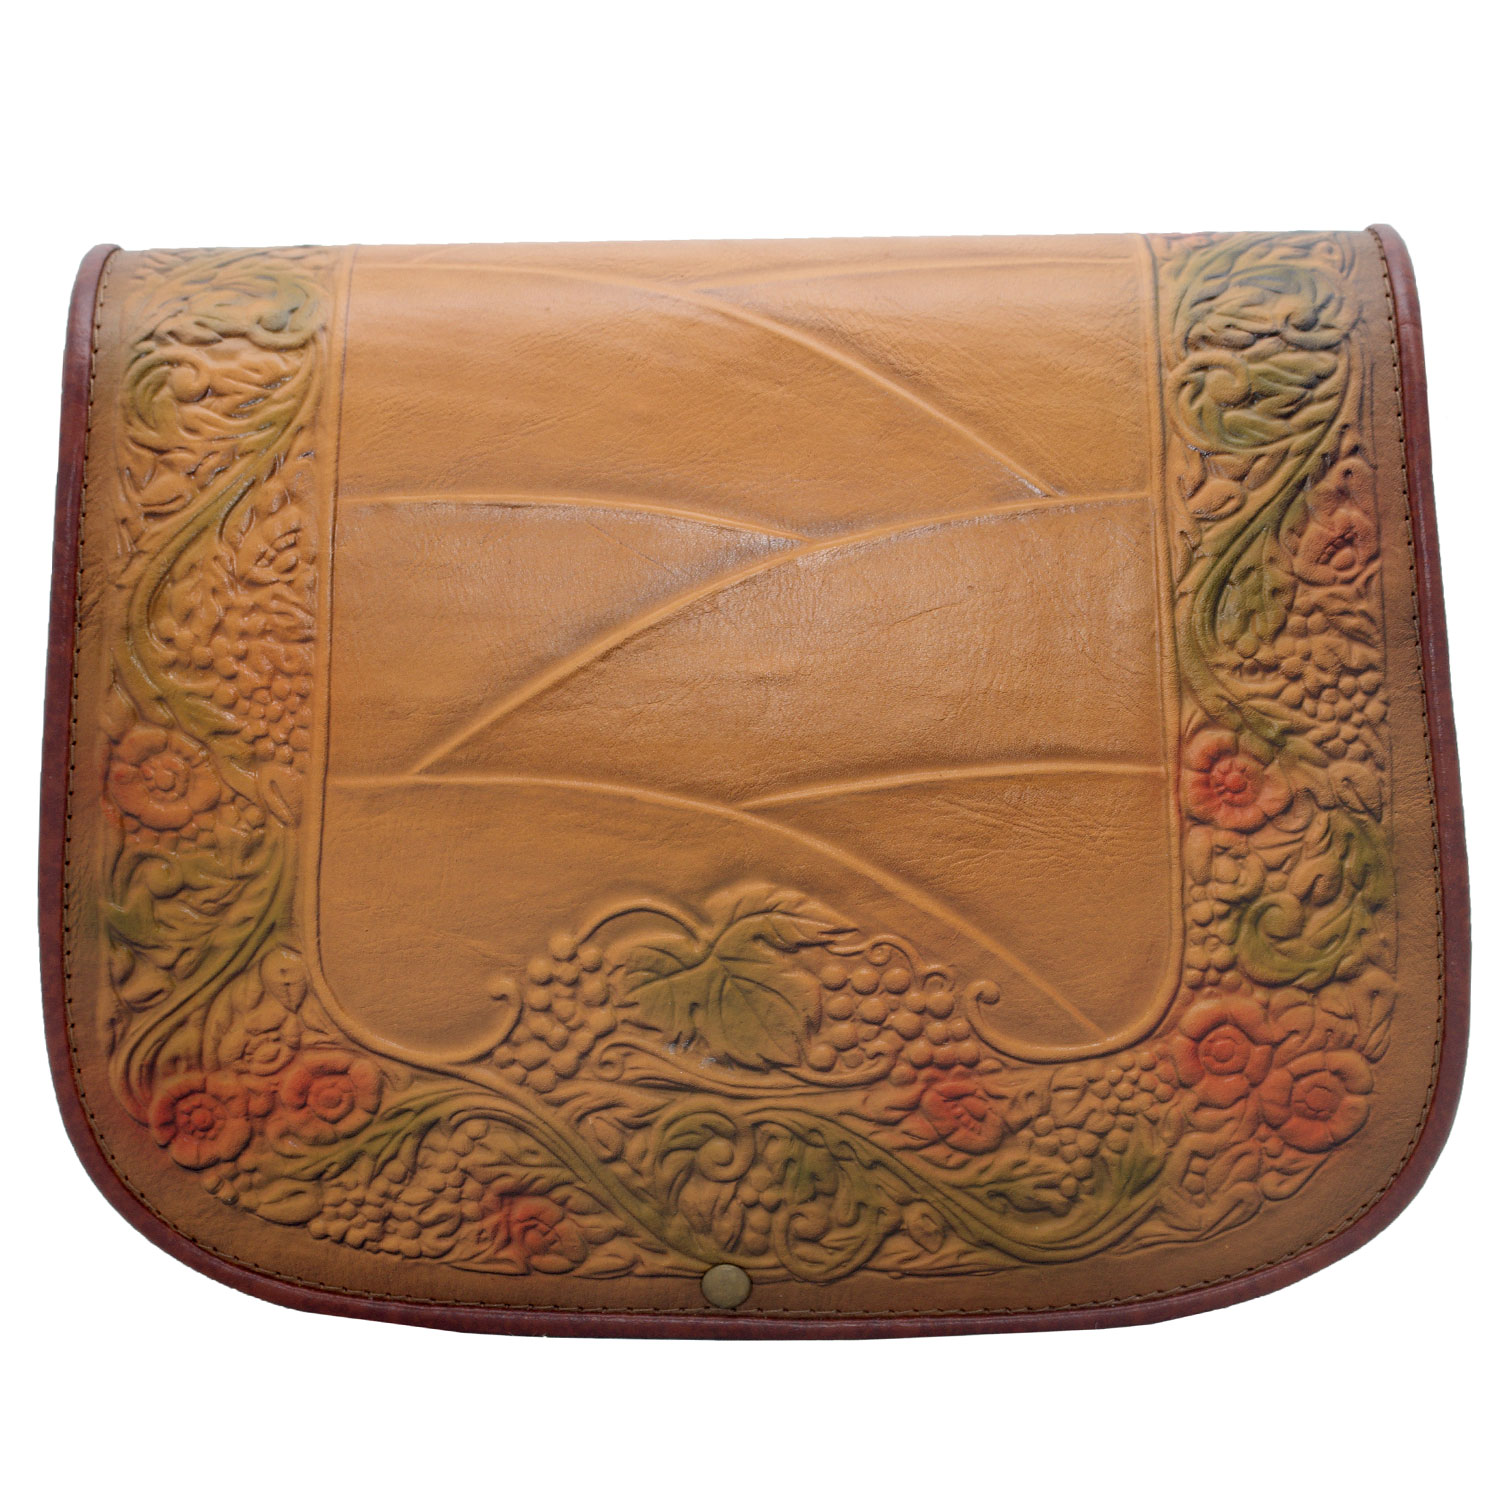 Woman-genuine-leather-bag-crossbody-satchel-light-brown-moulded-leaves